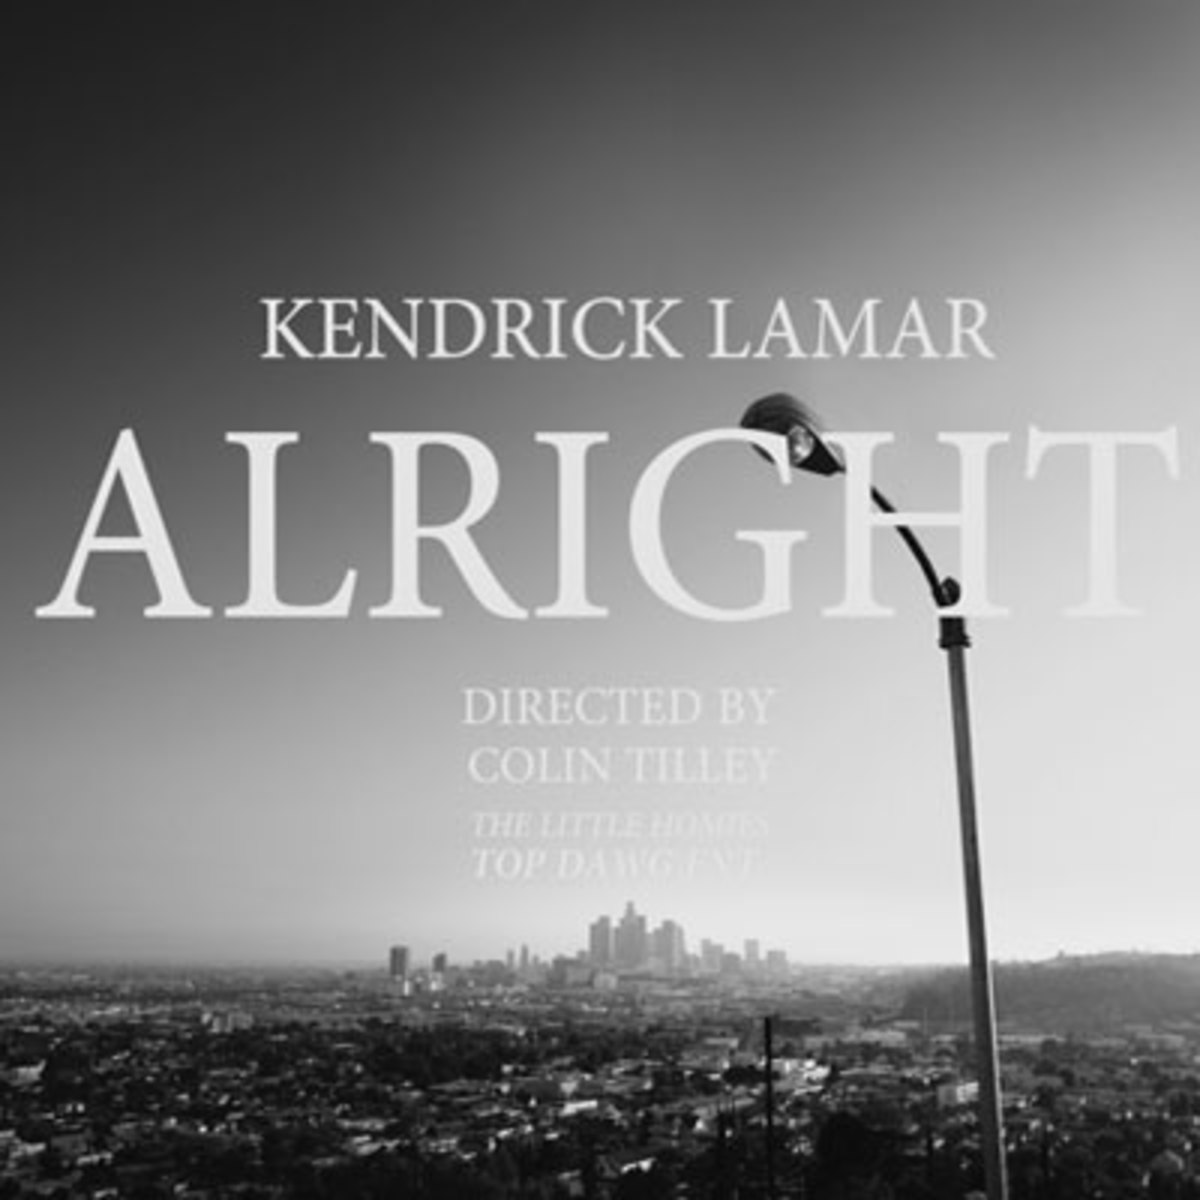 kendrick-lamar-alright.jpg